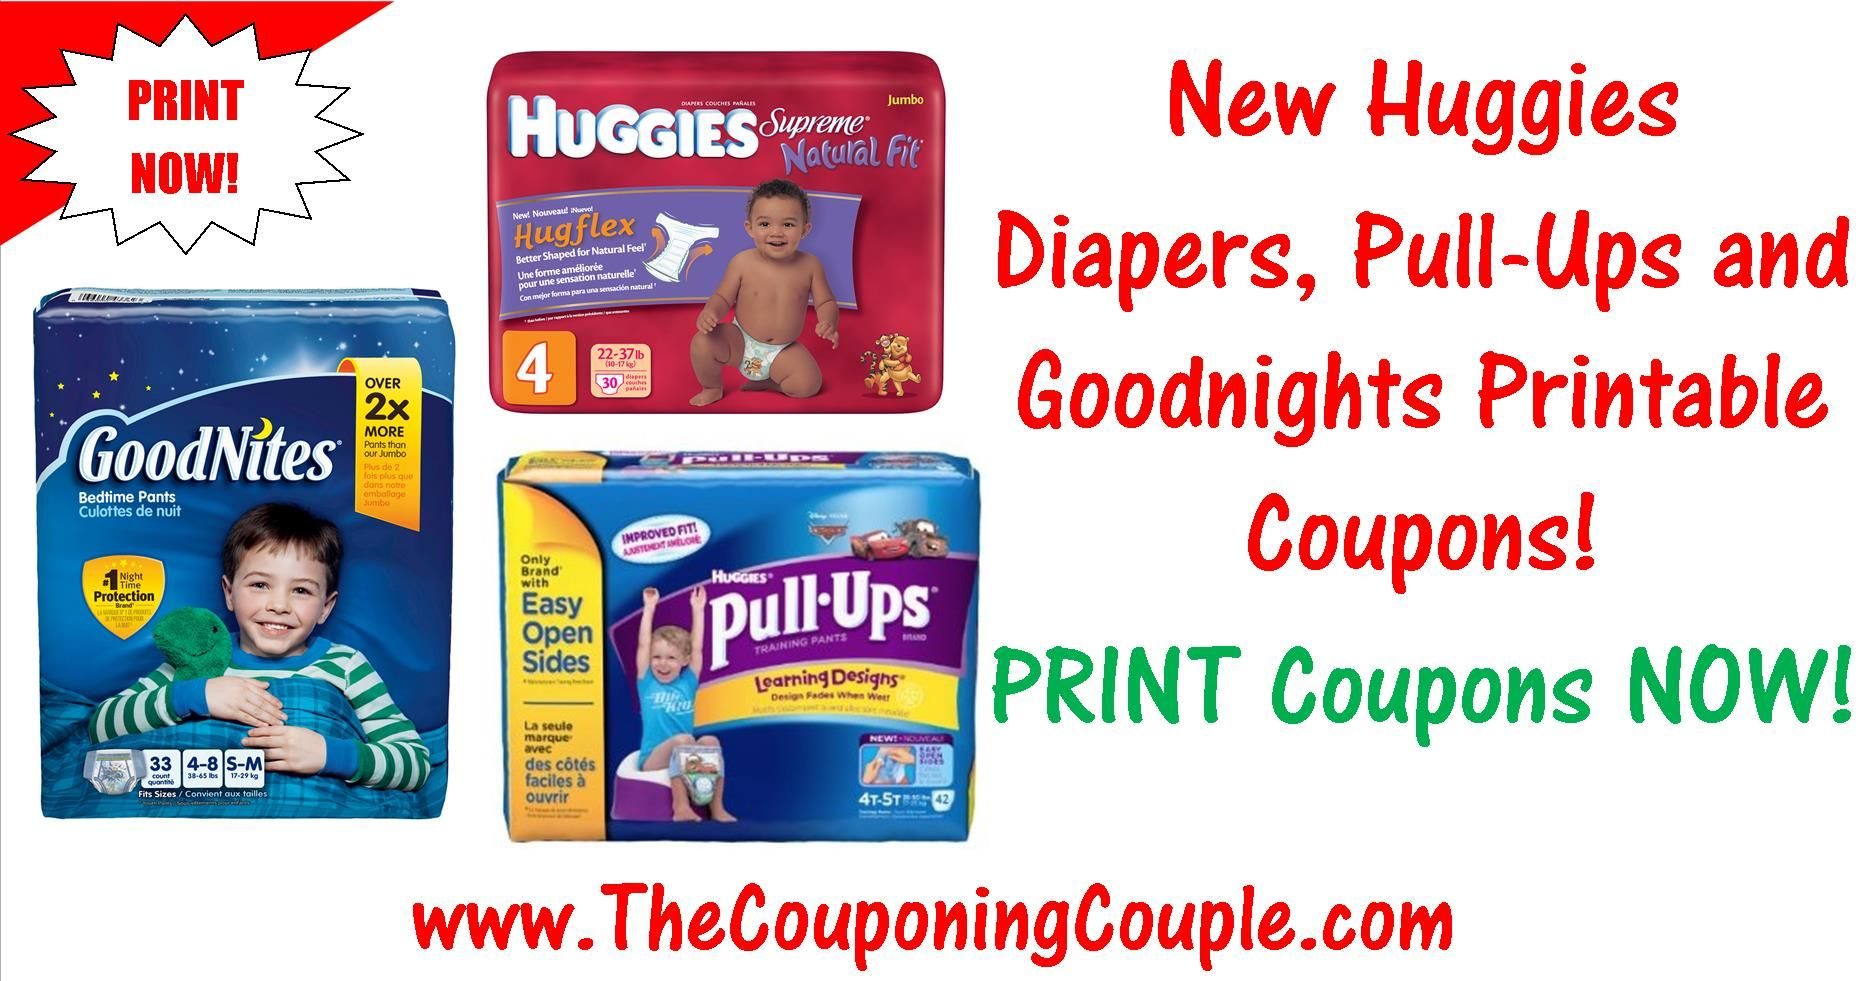 ***HOT NEW HIGH VALUE HUGGIES, PULL-UPS, AND GOODNITES COUPONS*** Print these NOW while they are still available! Click the Picture below to get the MOBILE FRIENDLY DIRECT LINKS ► http://www.thecouponingcouple.com/new-huggies-diapers-pull-ups-and-goodnites-printable-coupons/  Help us out and use the SHARE button below the Picture to SHARE this post with your Family and Friends!  #Coupons #Couponing #CouponCommunity  Visit us at http://www.thecouponingcouple.com for